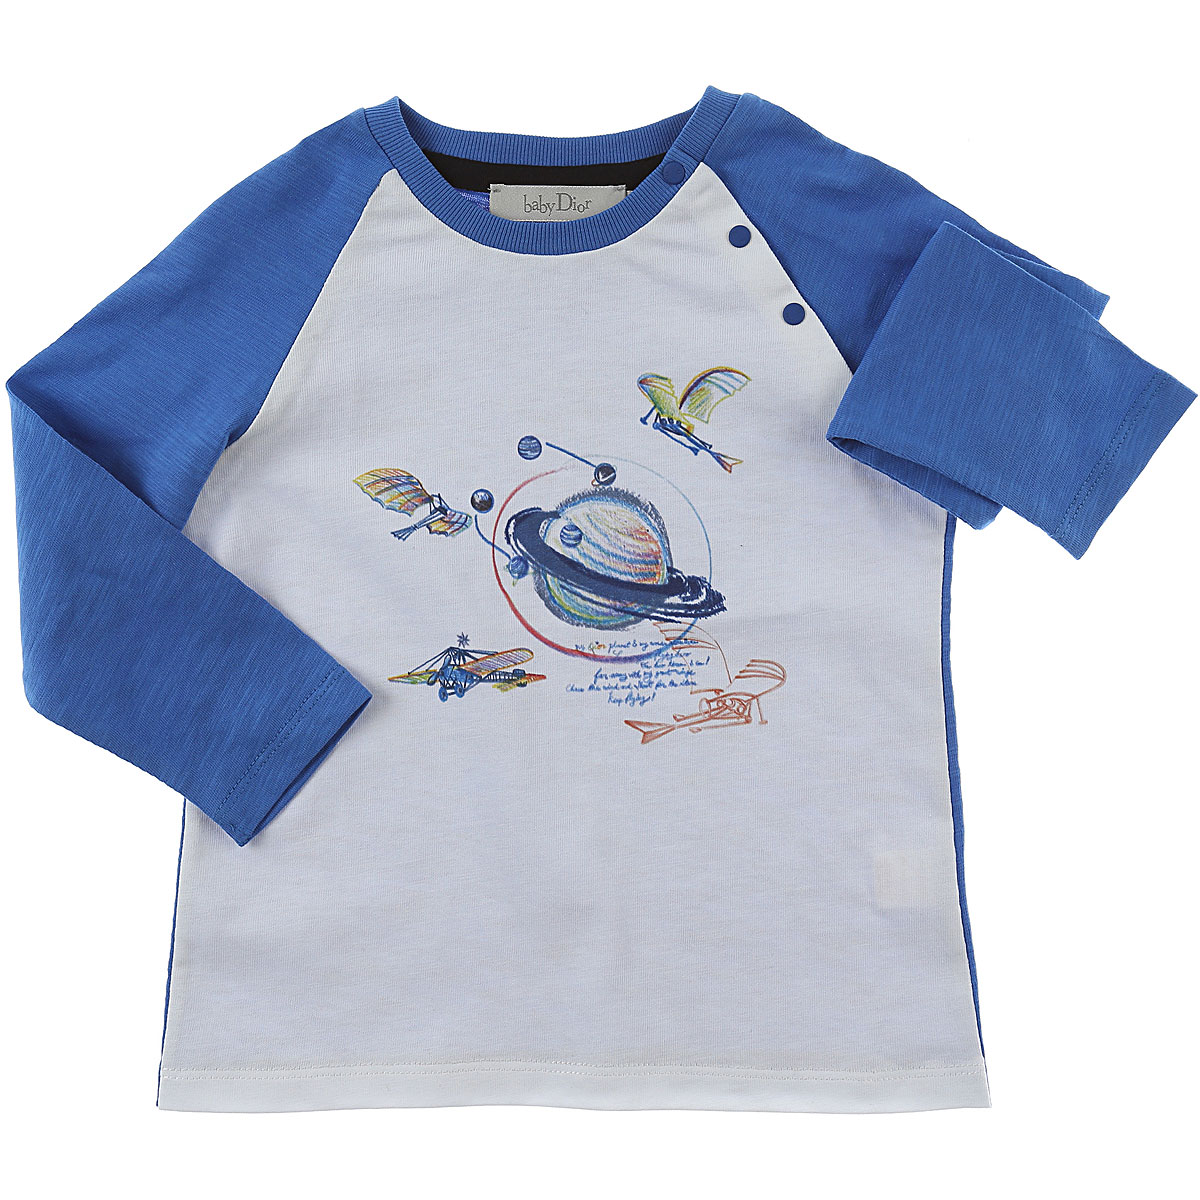 Image of Baby Dior Baby T-Shirt for Boys, White, Cotton, 2017, 12M 18M 2Y 3Y 6M 9M